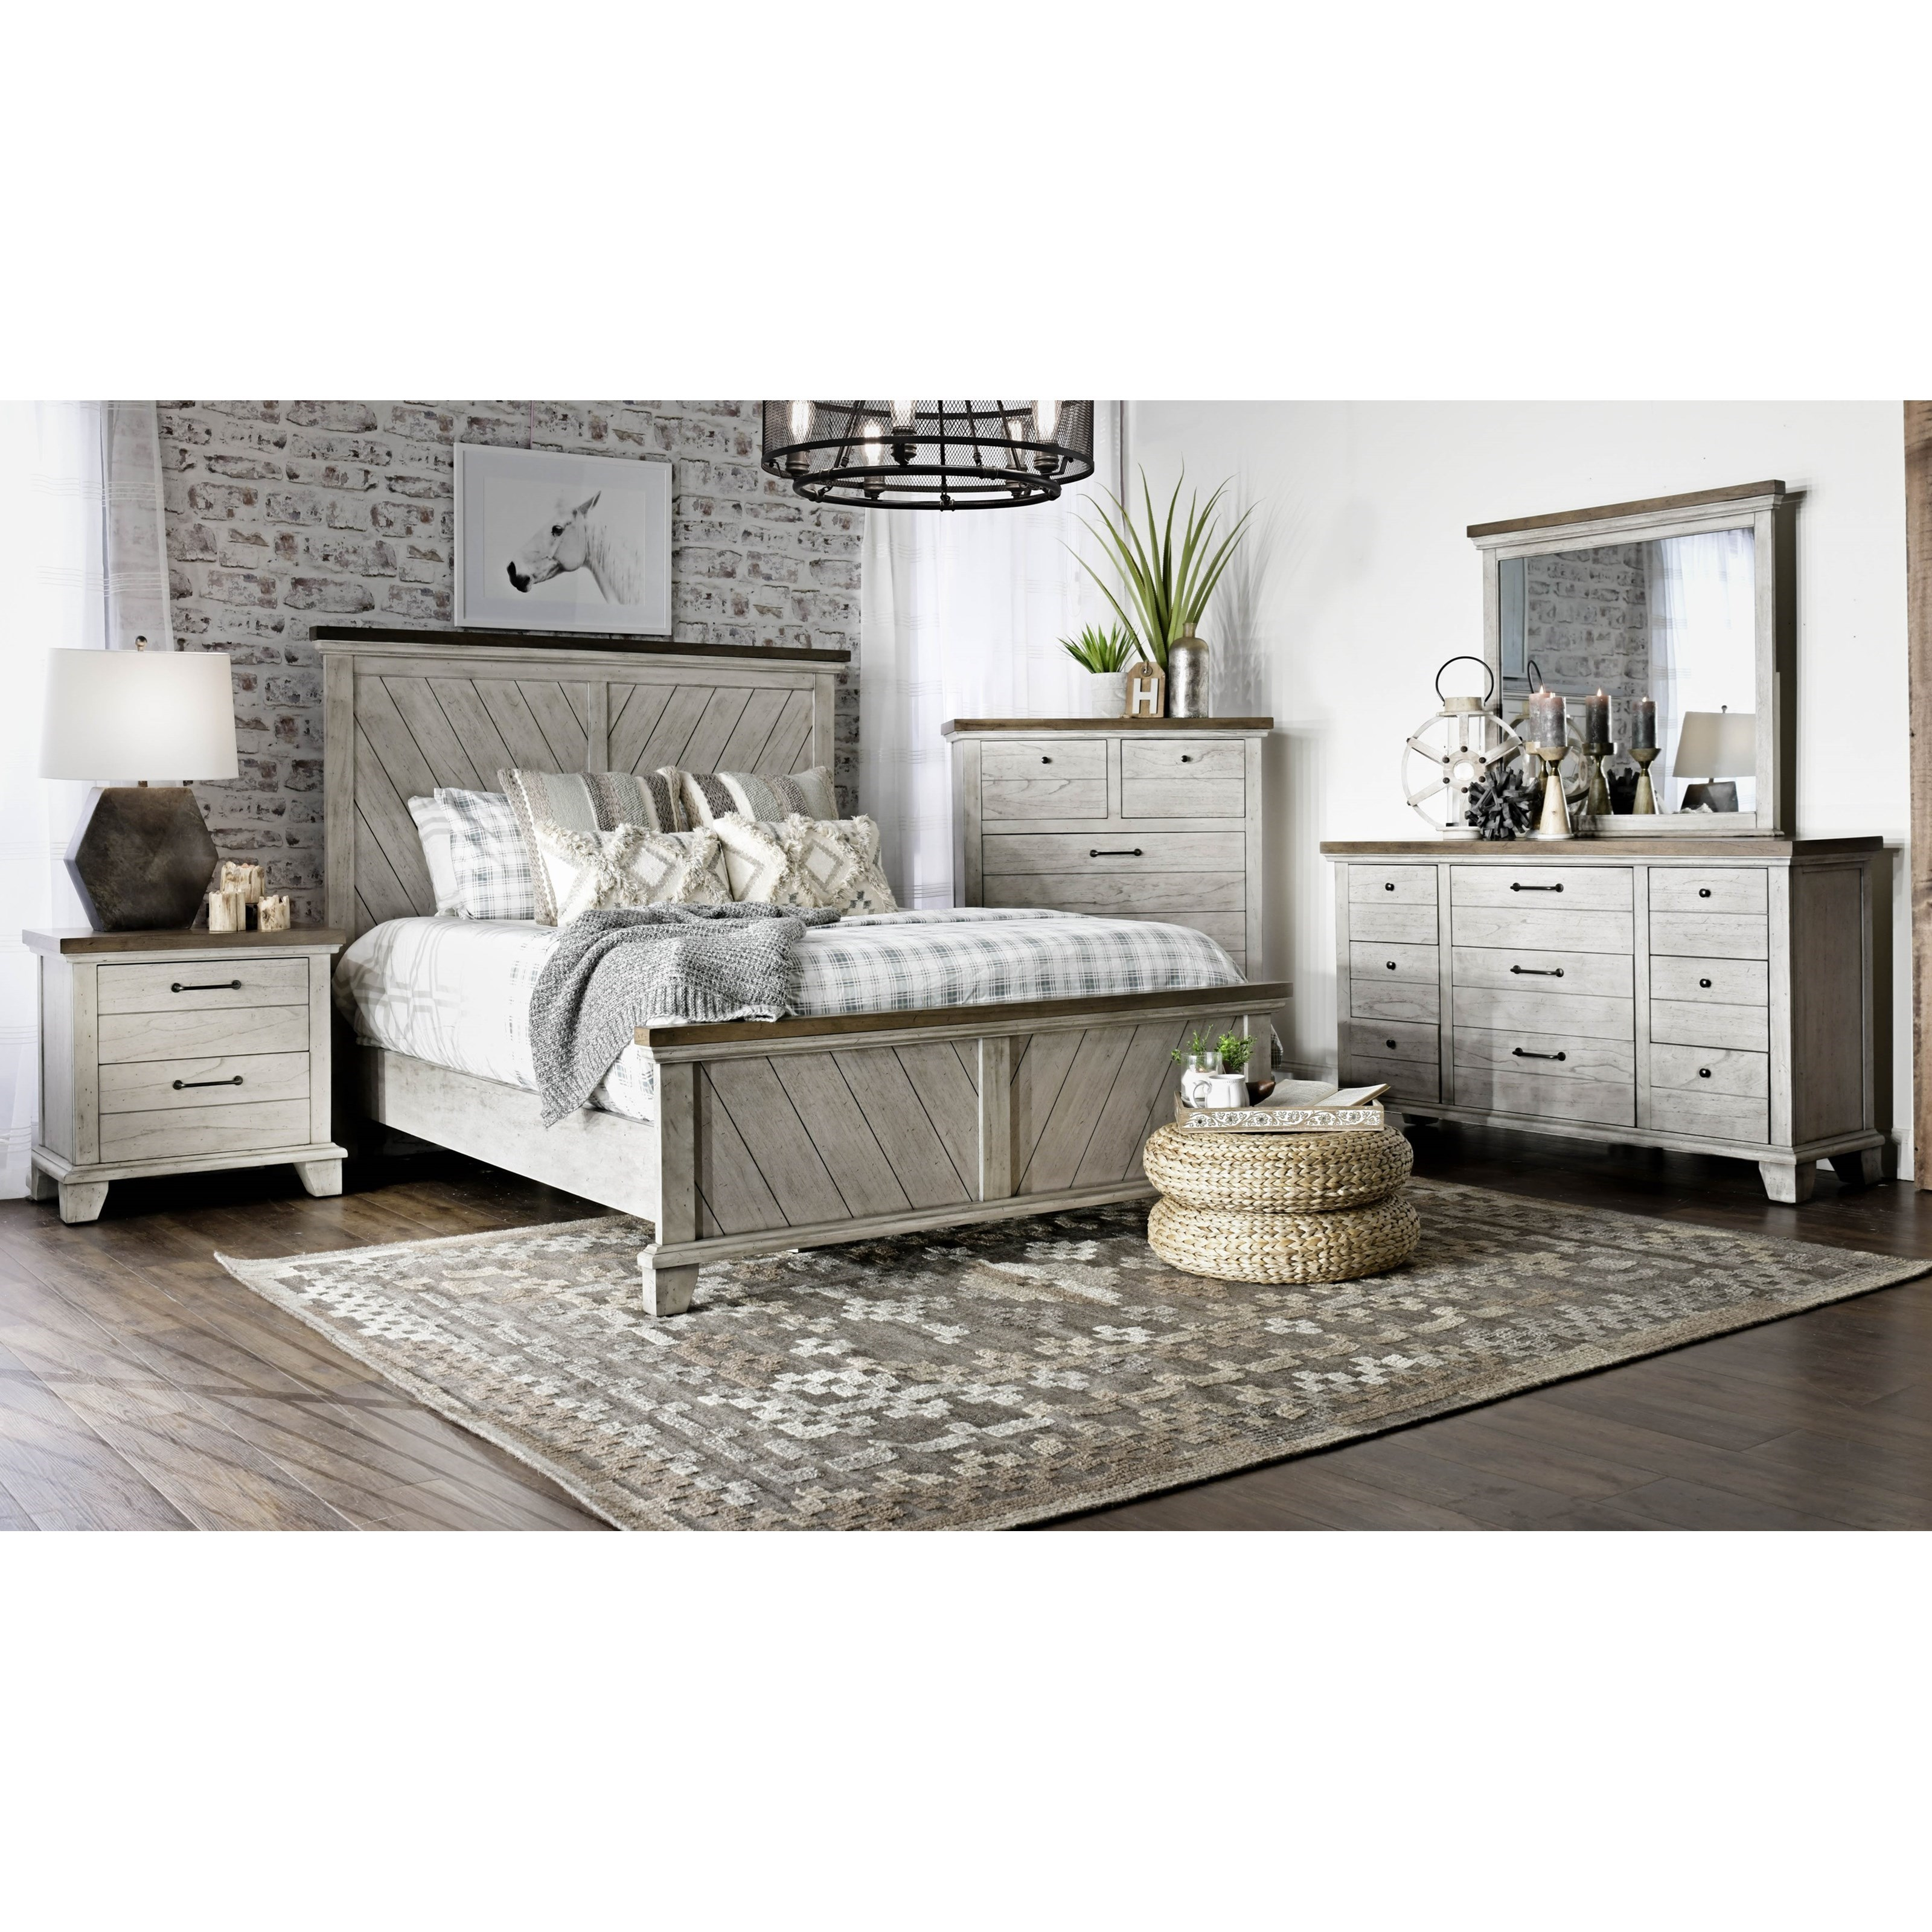 Bear Creek Queen Bedroom Group by Steve Silver at Northeast Factory Direct